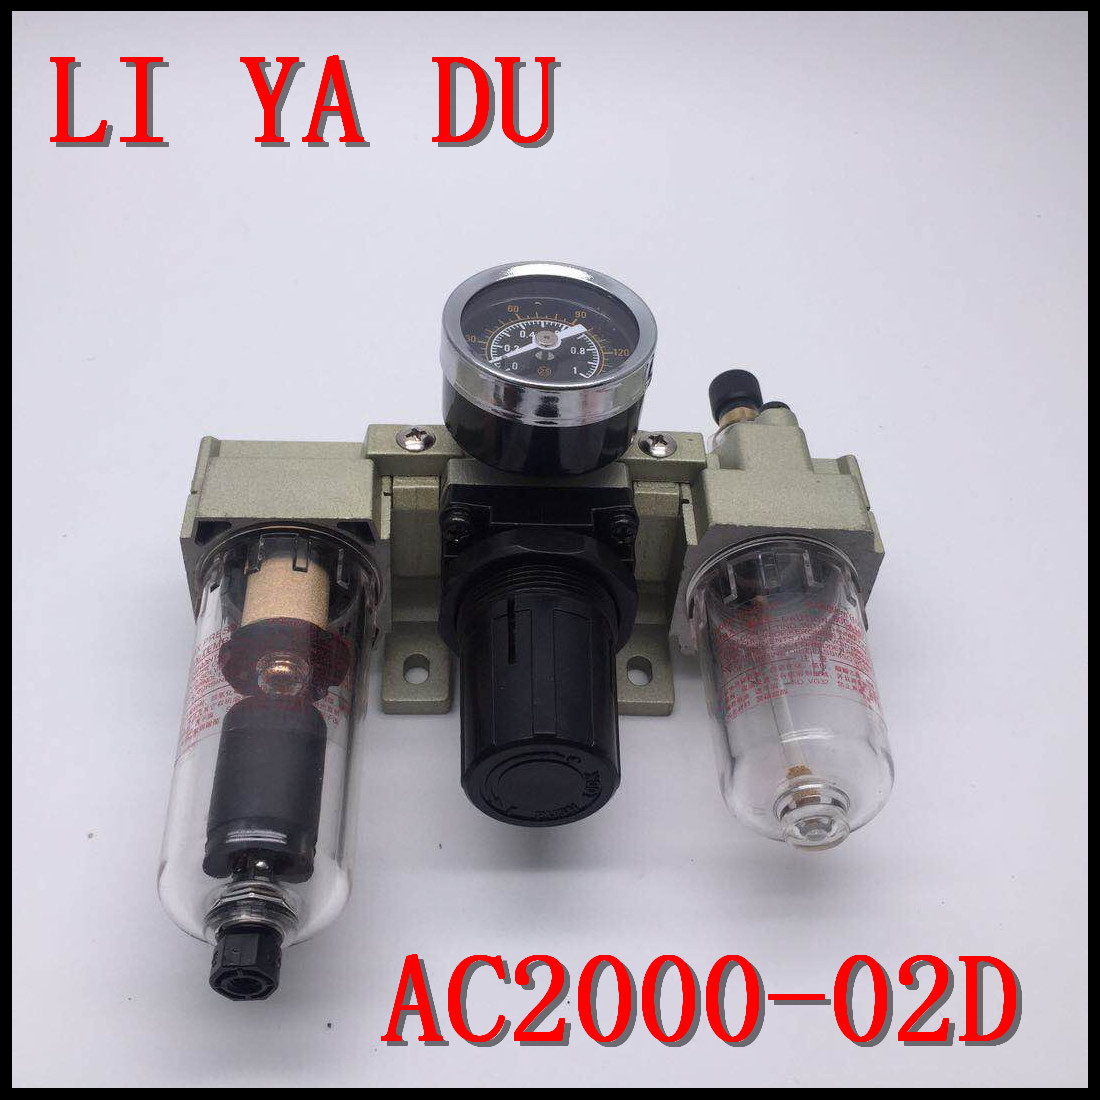 AC2000-02D G1/4 Sanlian pieces Oil and water separator Filter air compressor Reduce pressure regulating valve Automatic drain free shipping 1 pcs air pump air compressor smc auto drain ad402 04 end discharge drain valve oil water separator g1 4